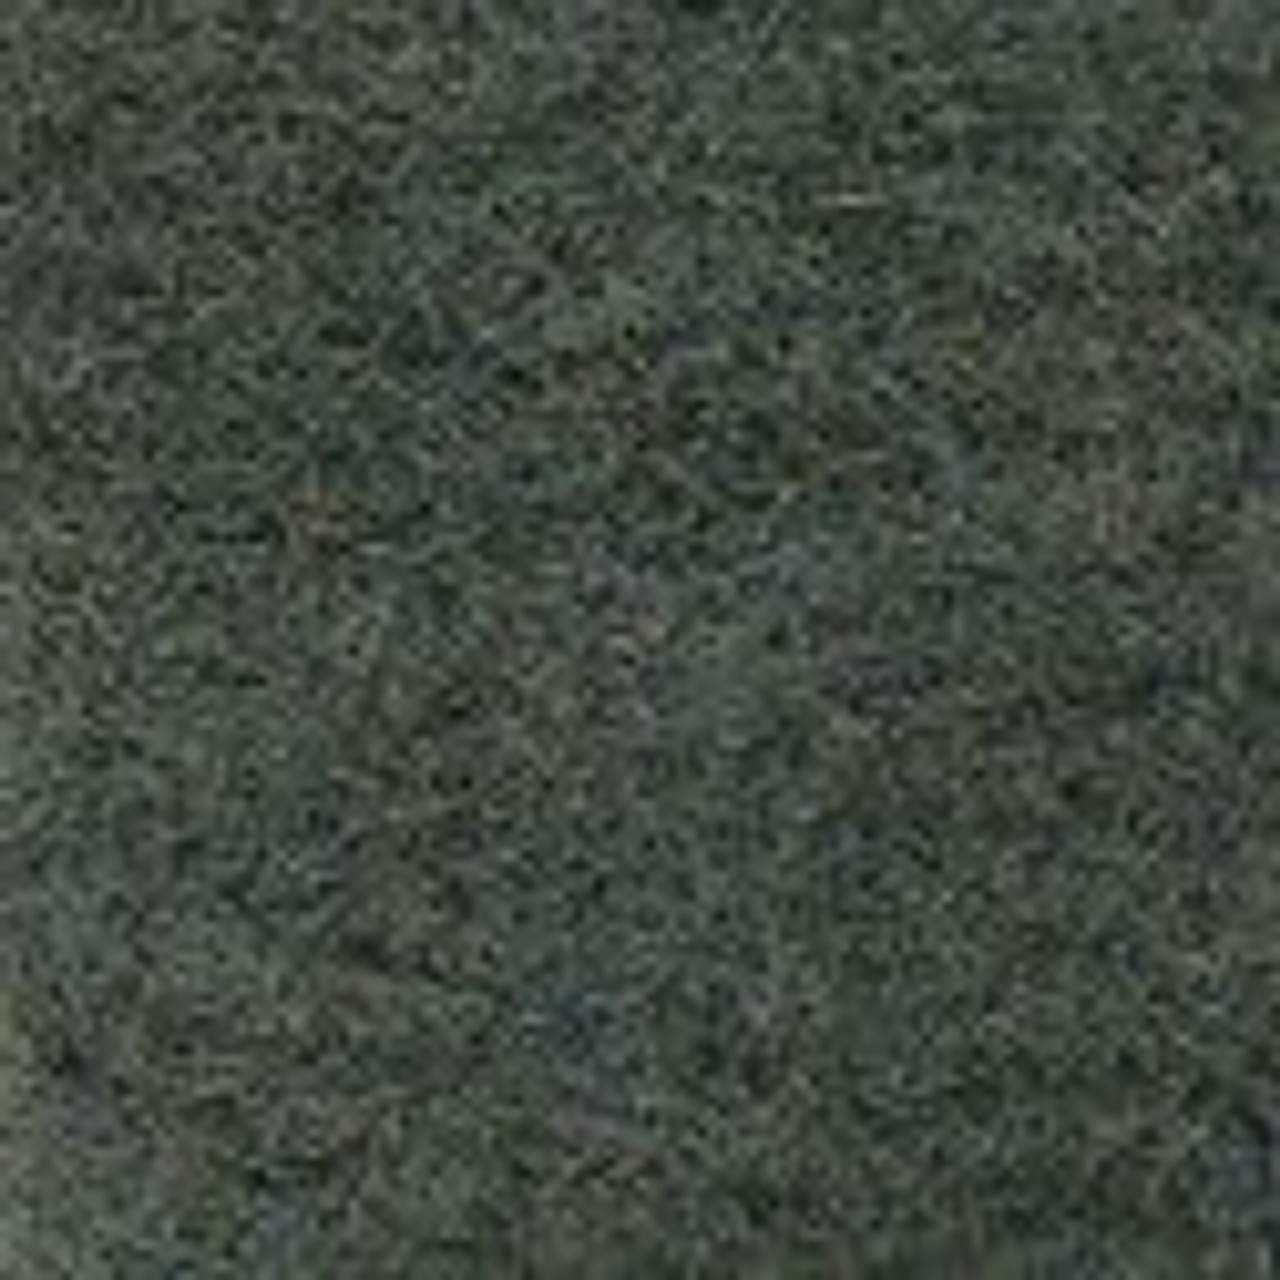 AQUA-TURF Smoke Marine Carpet 72""